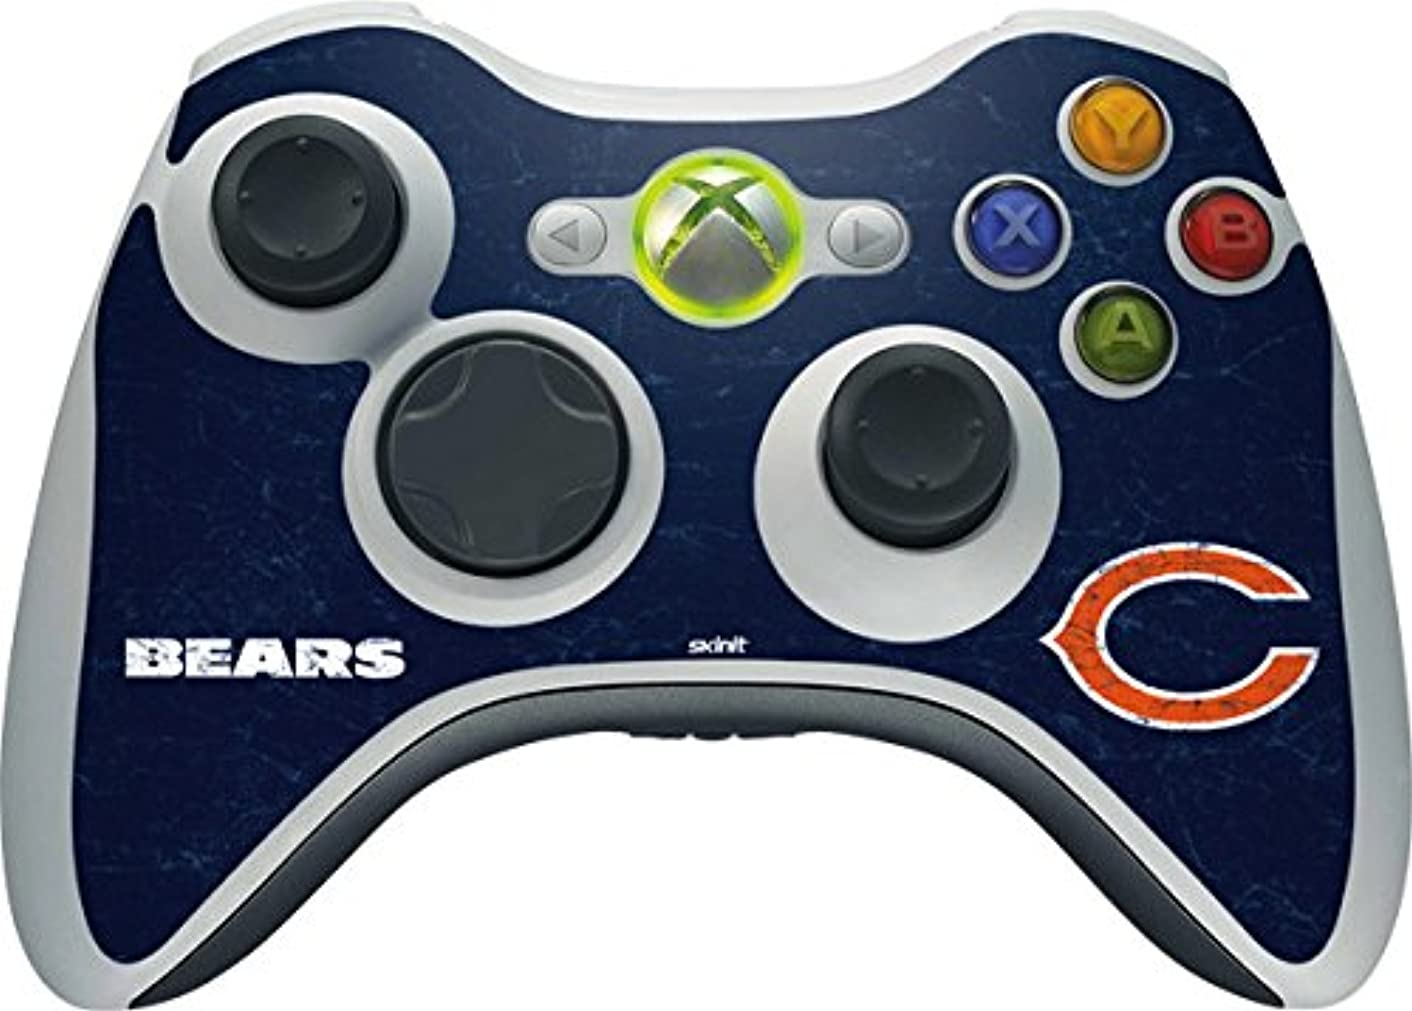 Skinit NFL Chicago Bears Xbox 360 Wireless Controller Skin - Chicago Bears Distressed Design - Ultra Thin, Lightweight Vinyl Decal Protection